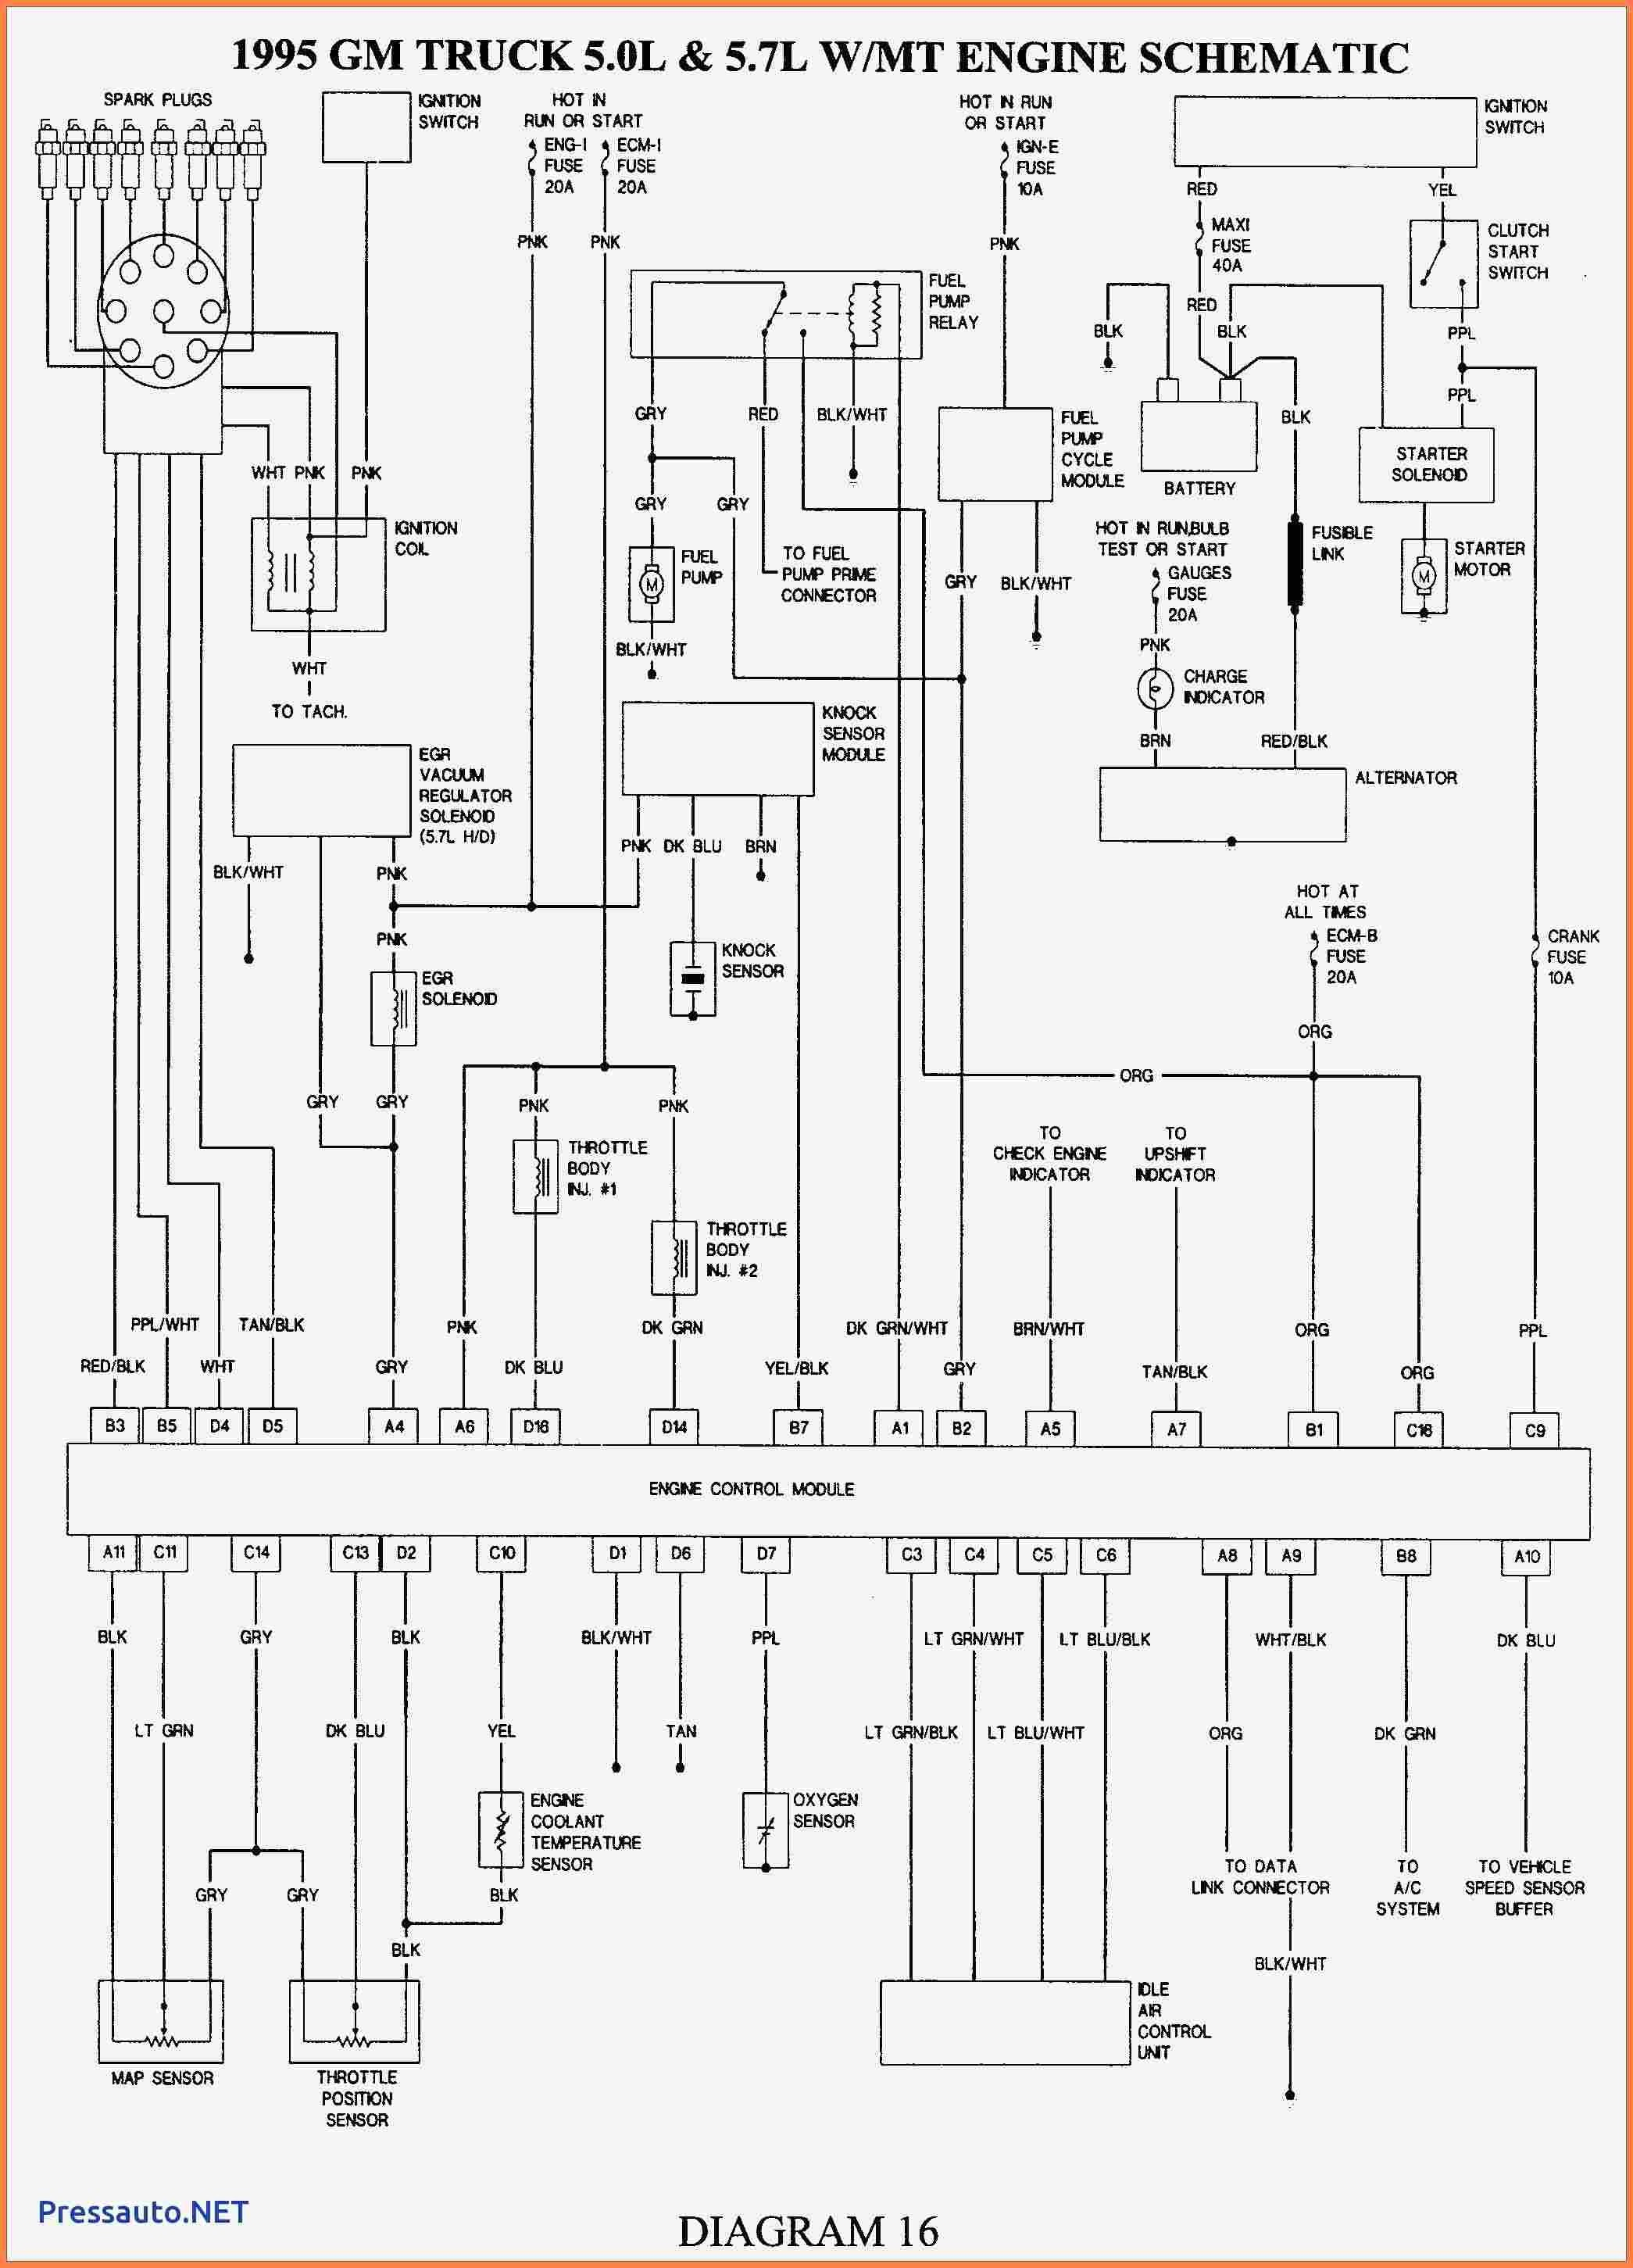 wiring diagram 2000 chevrolet silverado wiring diagram datasource 2000 chevy silverado 1500 radio wiring diagram 2000